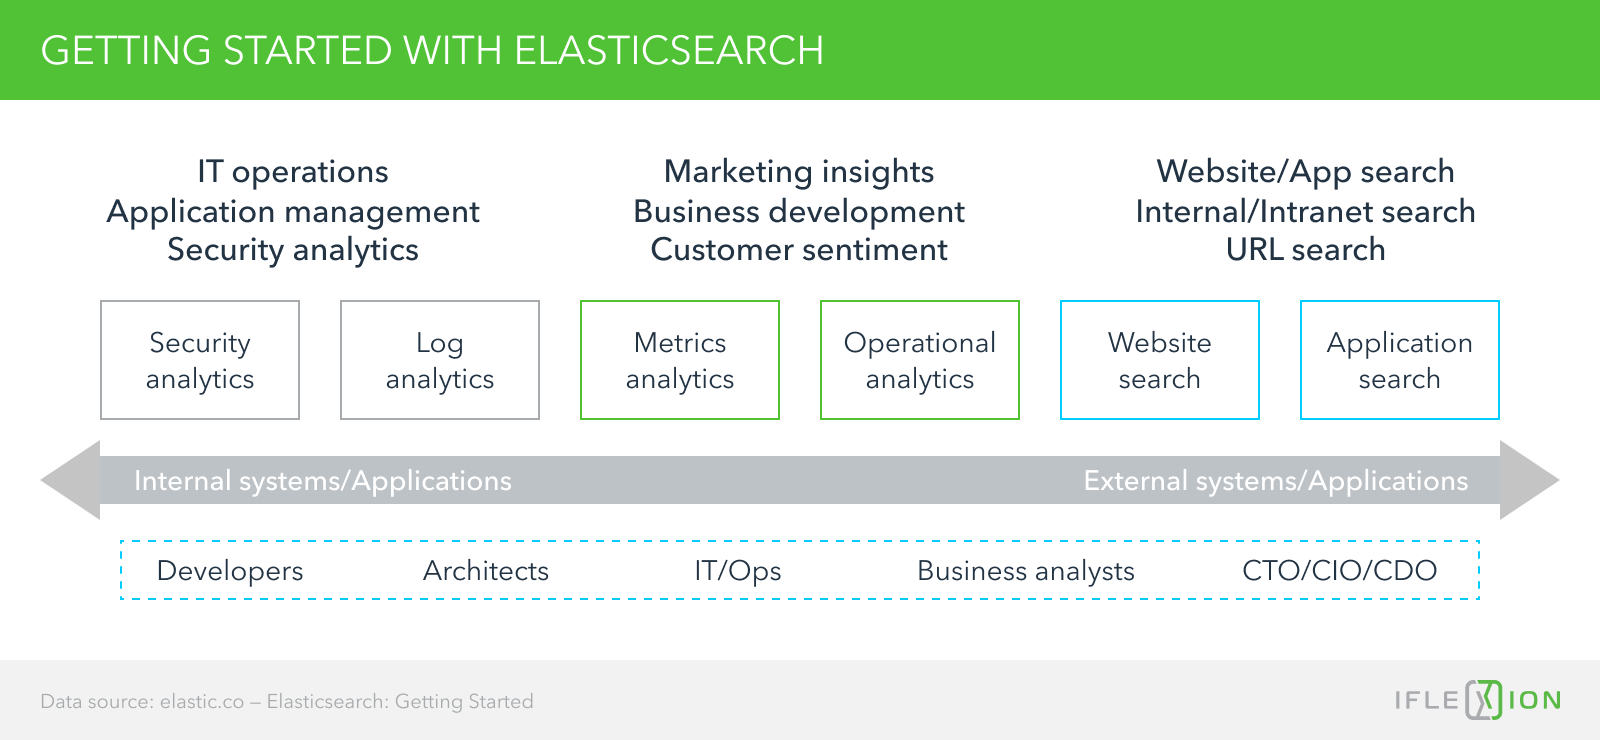 Getting started with Elasticsearch